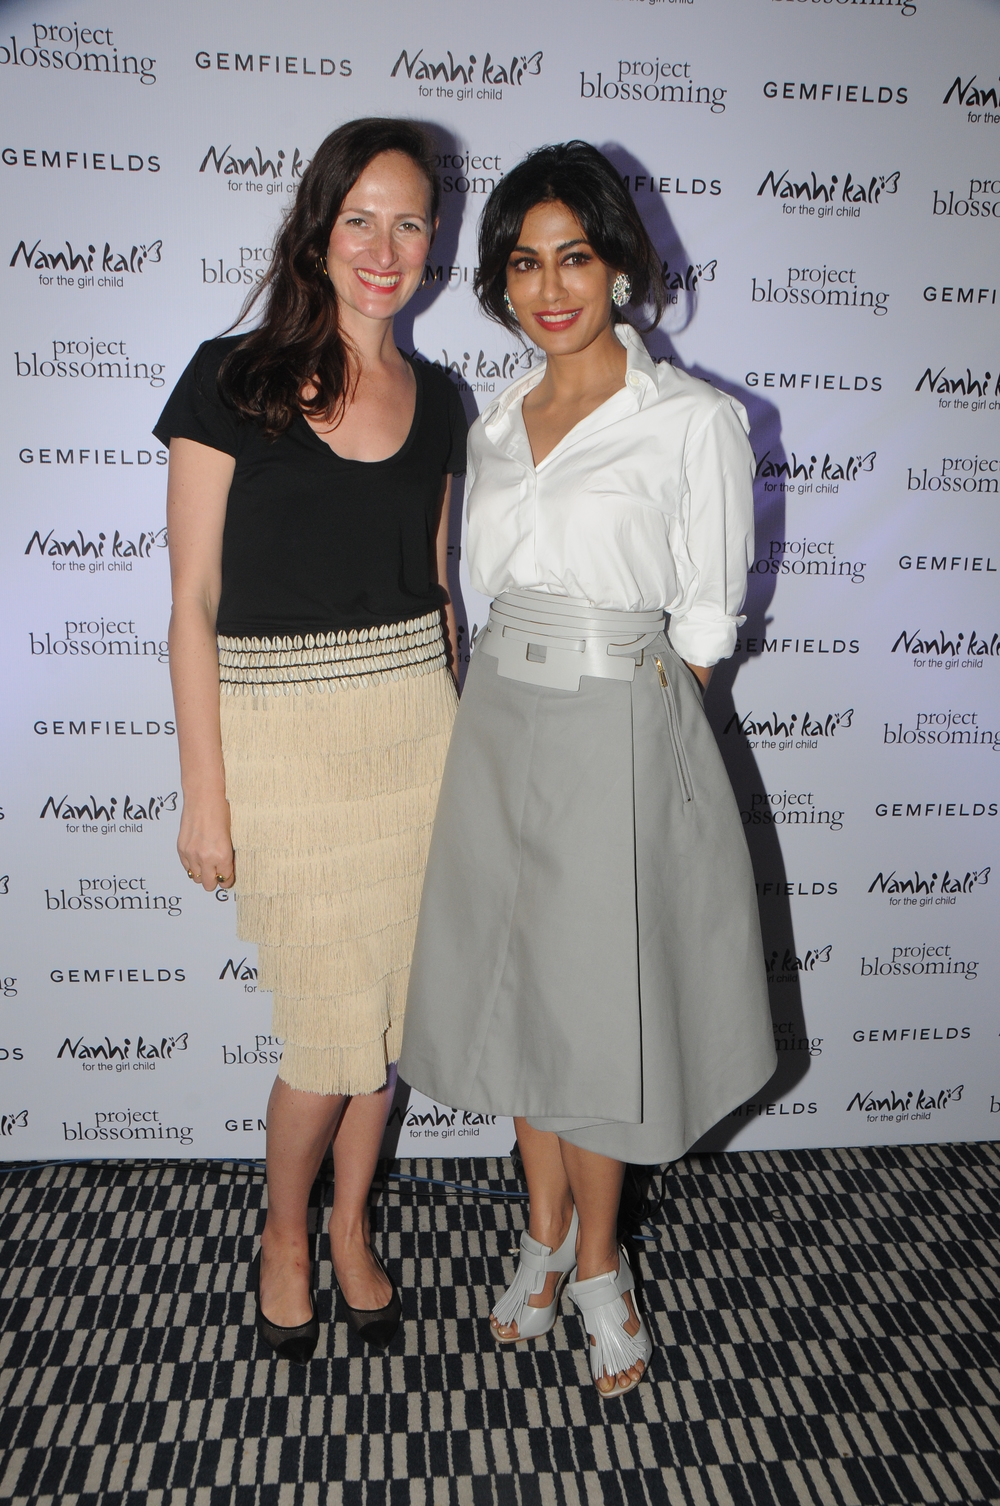 Chitrangda Singh, Project Blossoming Ambassador and Anna Haber, Global Marketing Director, Gemfields at the Project Blossoming